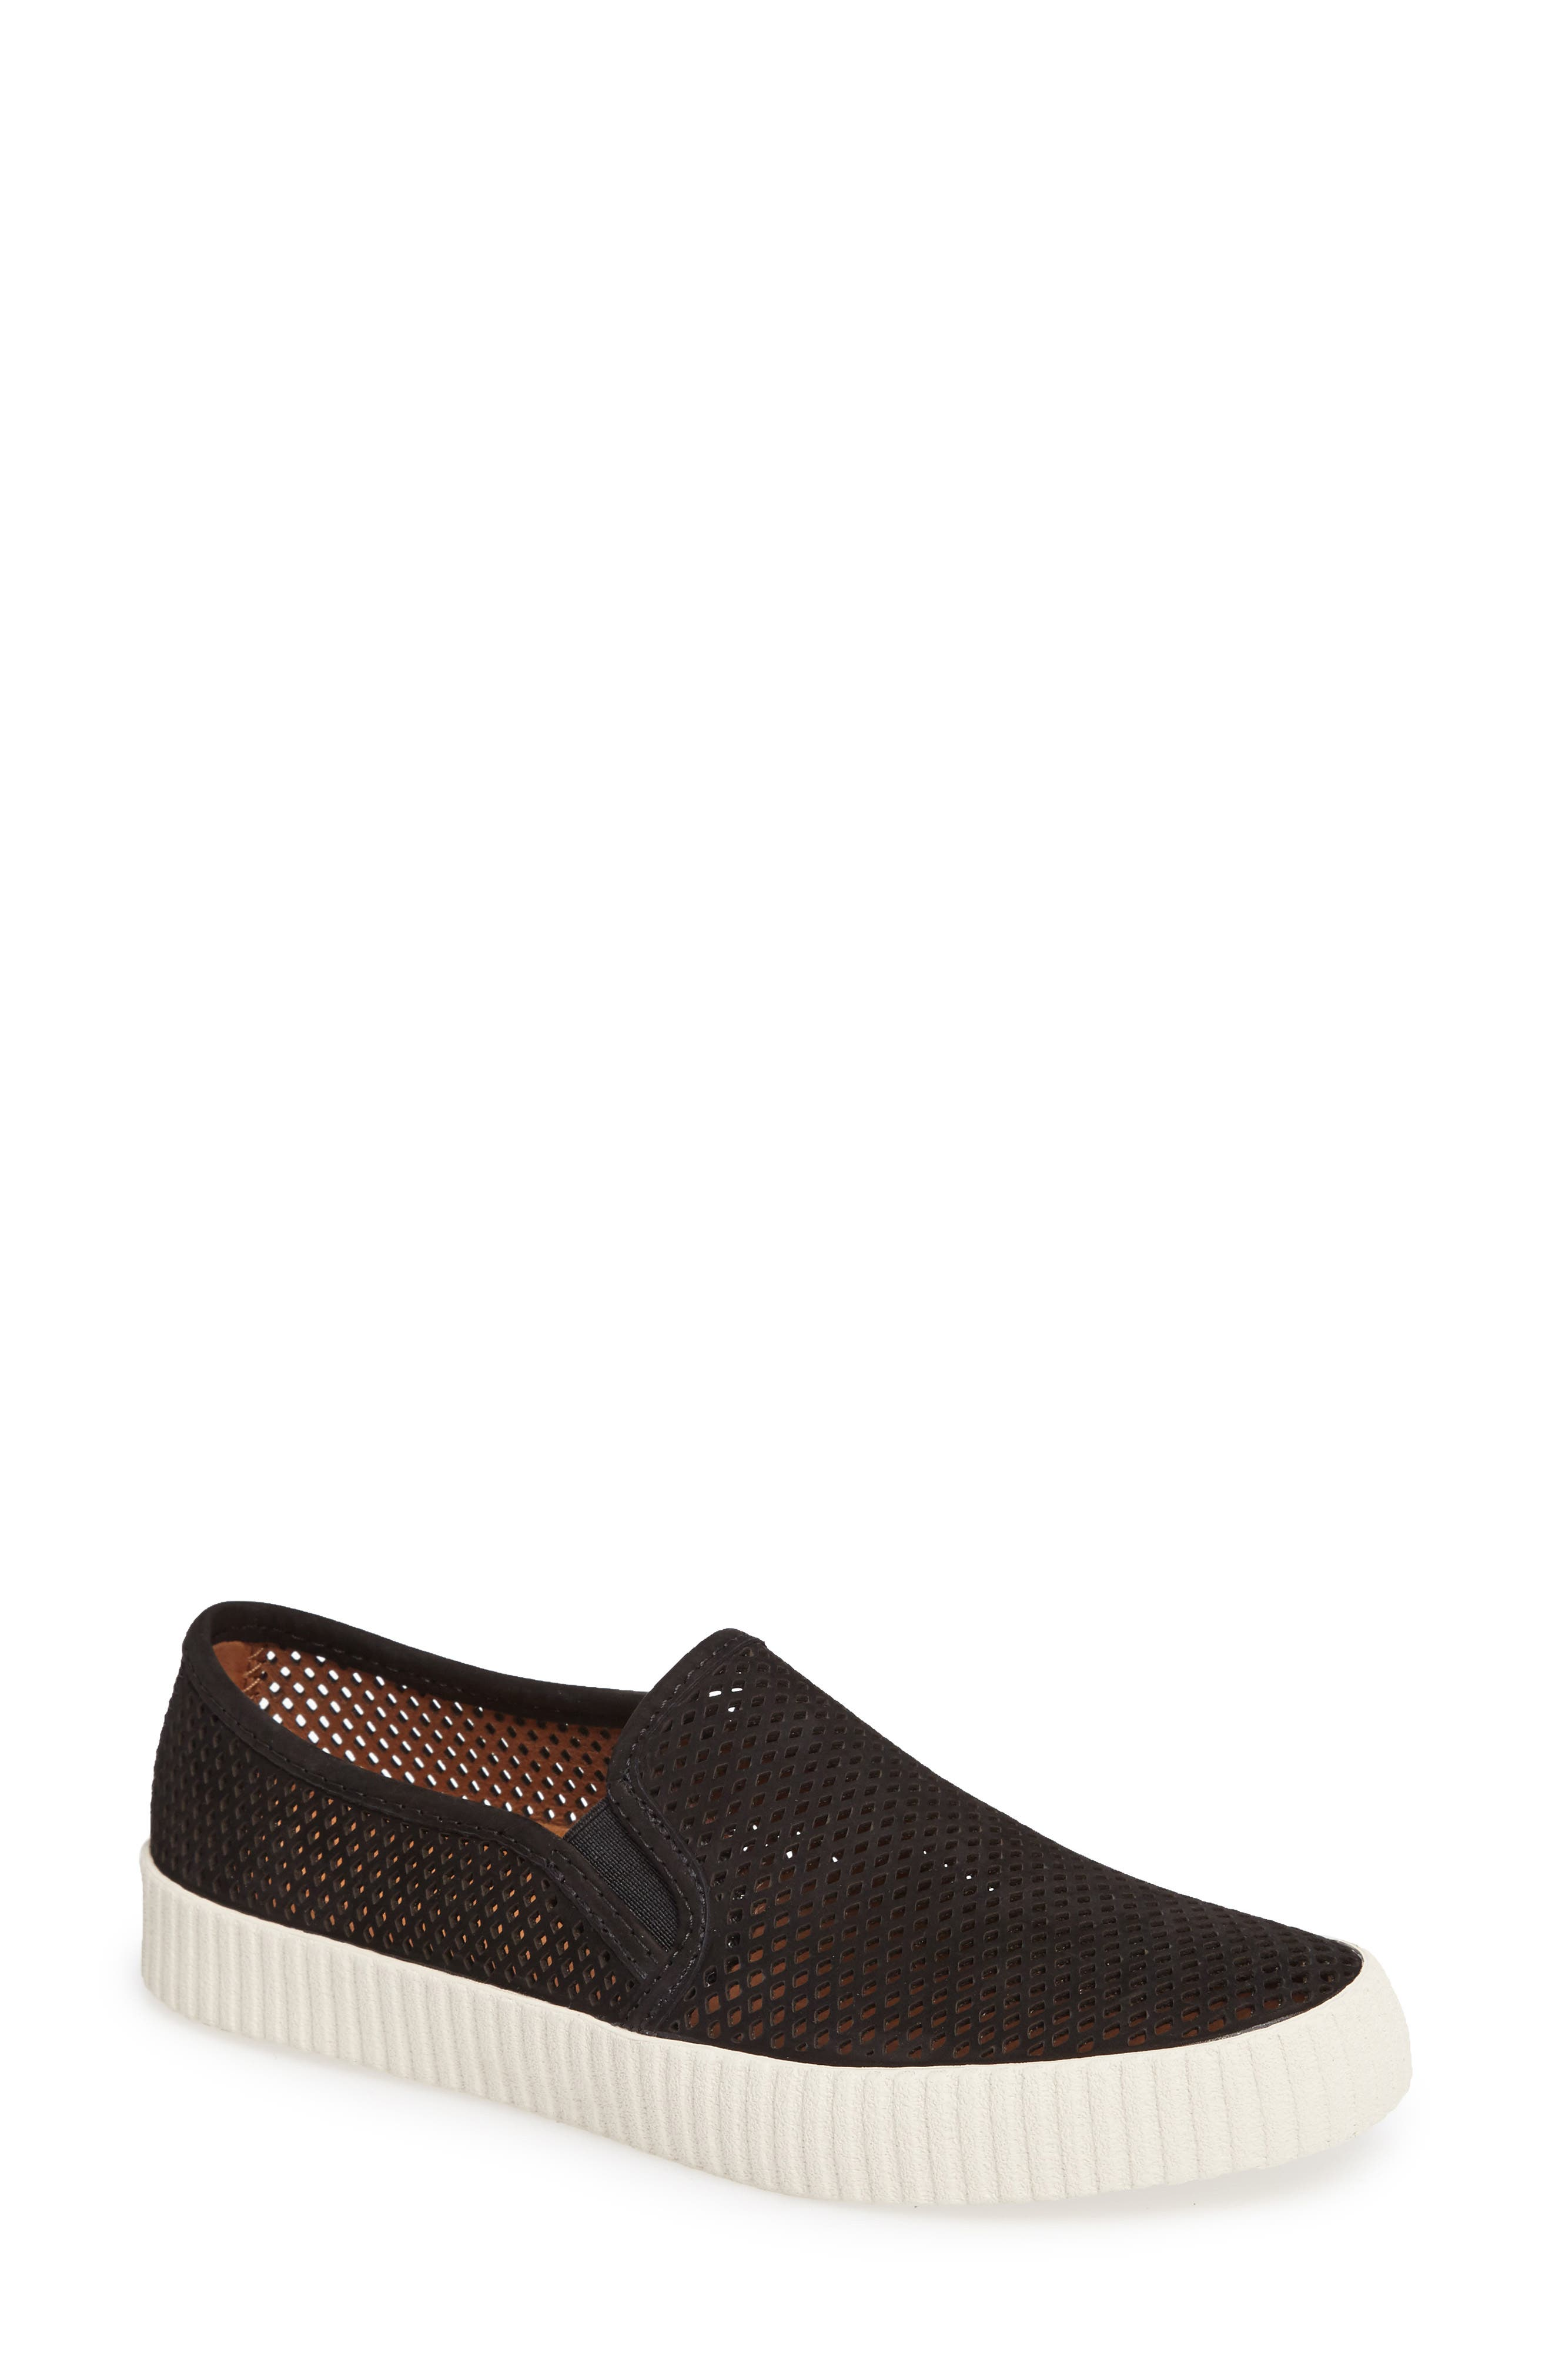 Camille Perforated Slip-On Sneaker,                             Main thumbnail 1, color,                             001